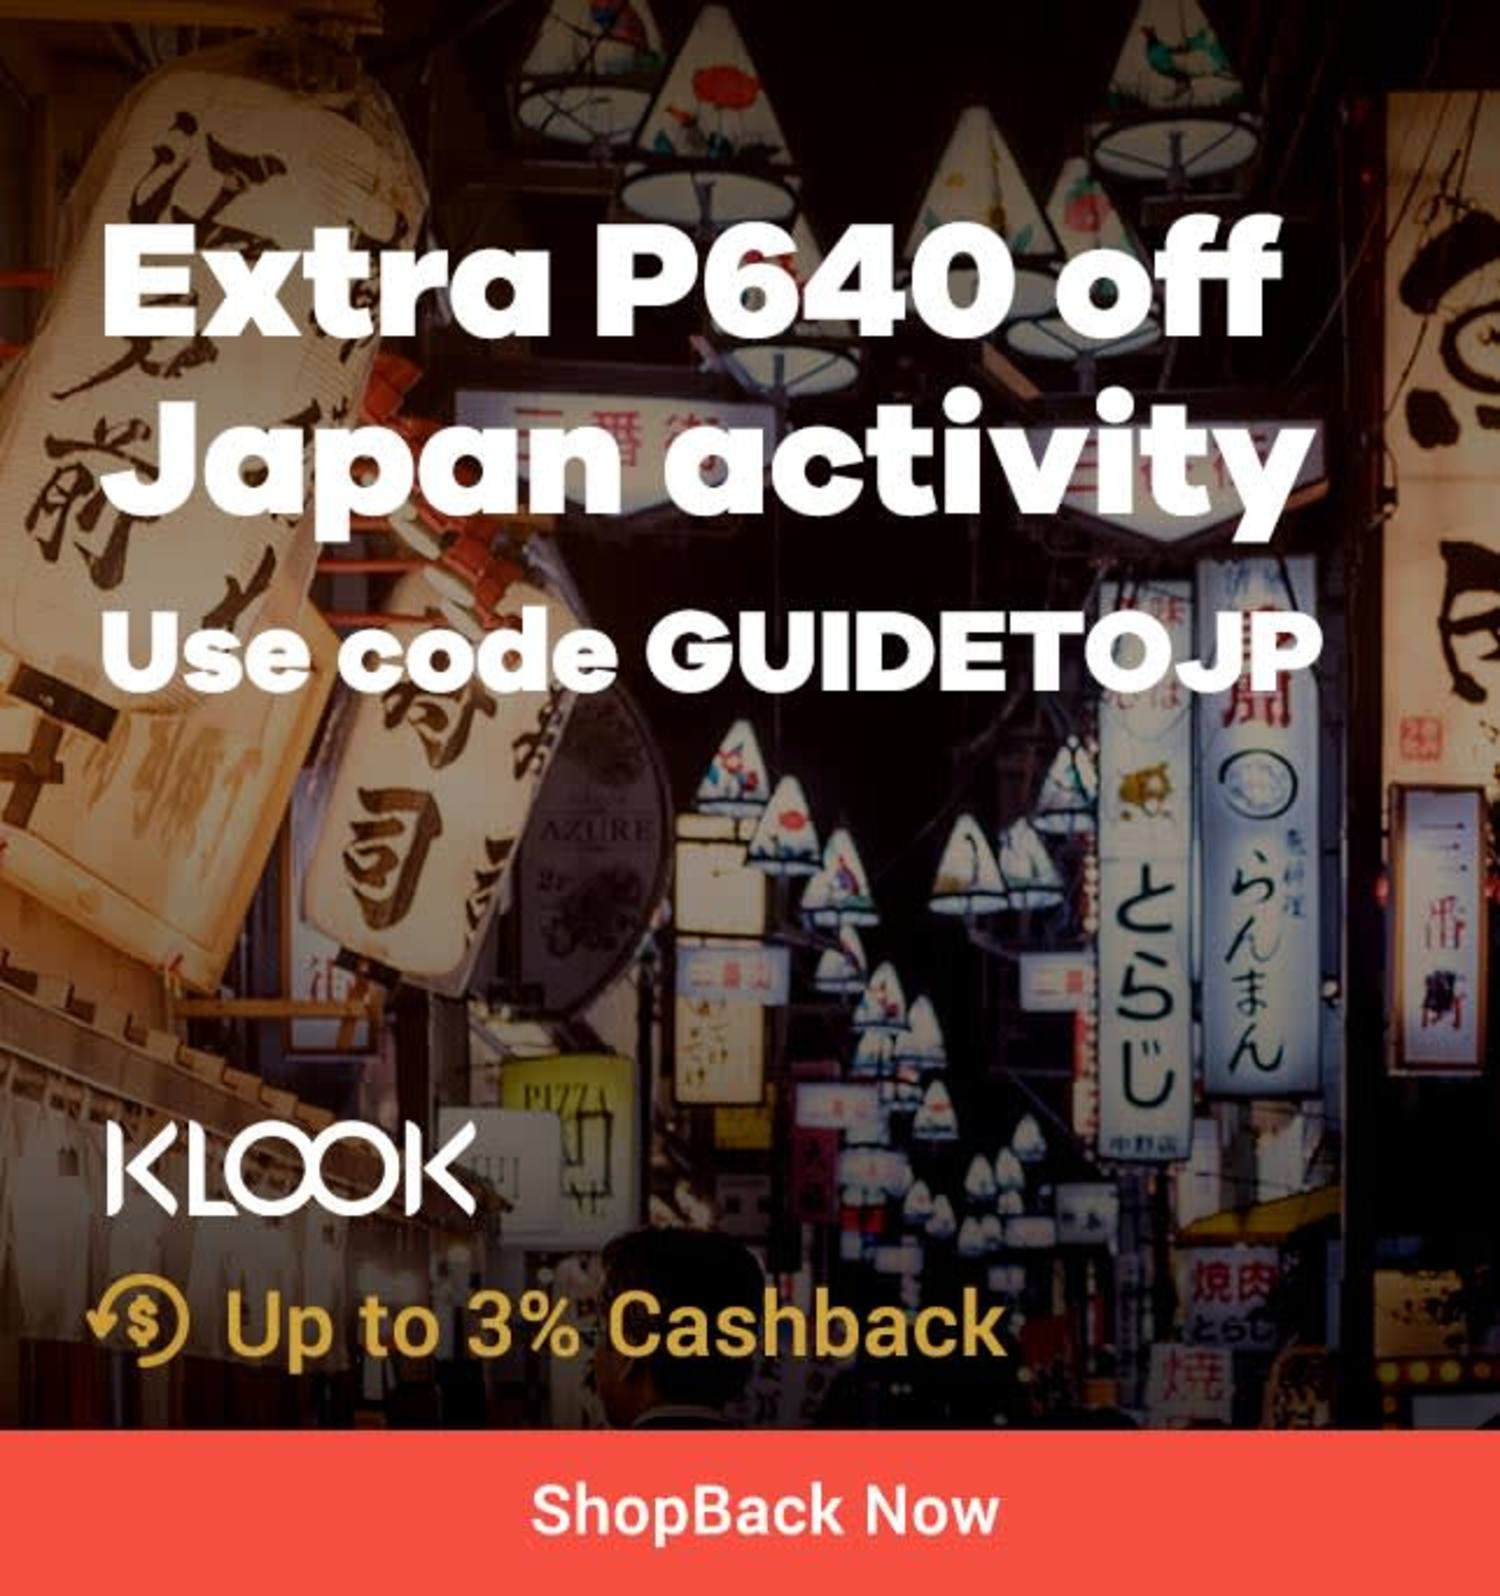 KLOOK Extra P650 off any Japan Activity + Up to 3% Cashback